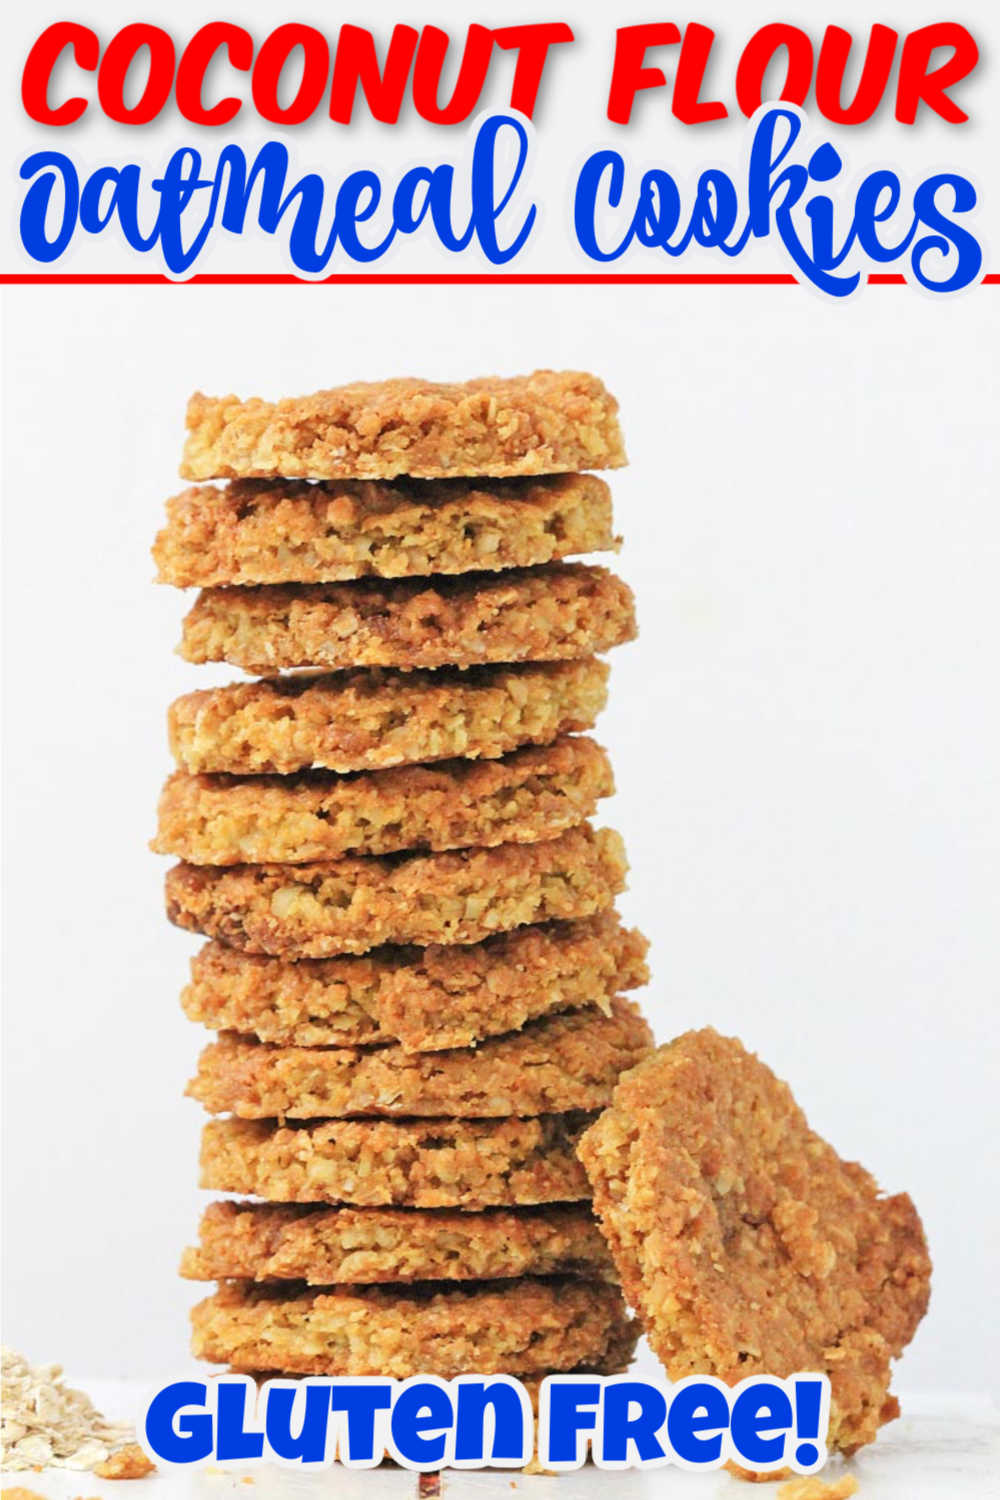 Gluten free coconut flour oatmeal cookies will win you and your family over! Meal prep these to only need to bake a few at a time! #glutenfree #coconutflour #oatmealcookies